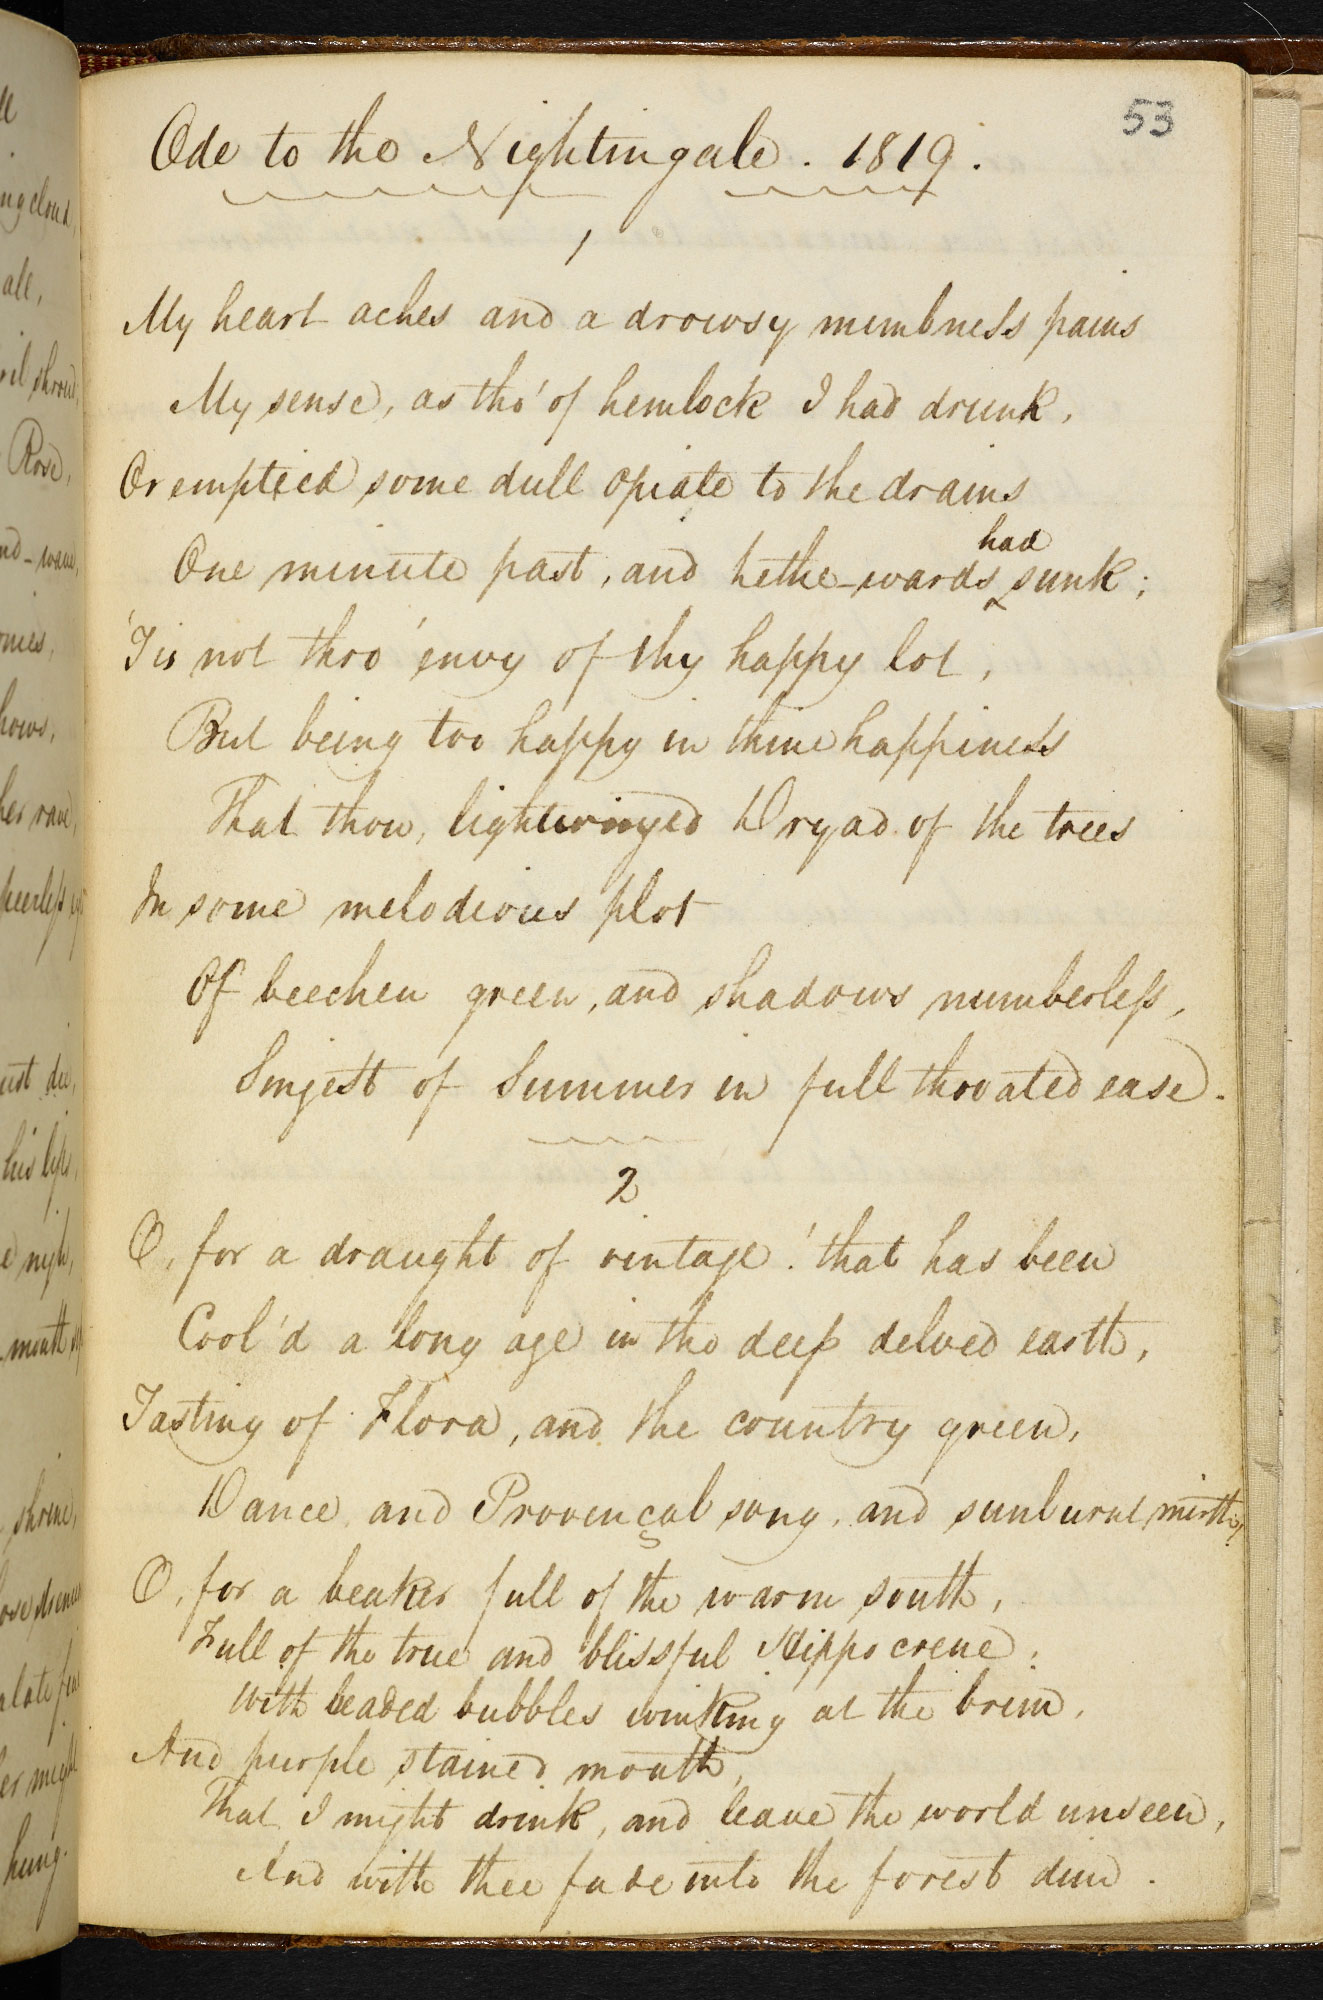 Manuscript of 'Ode to a Nightingale' by John Keats